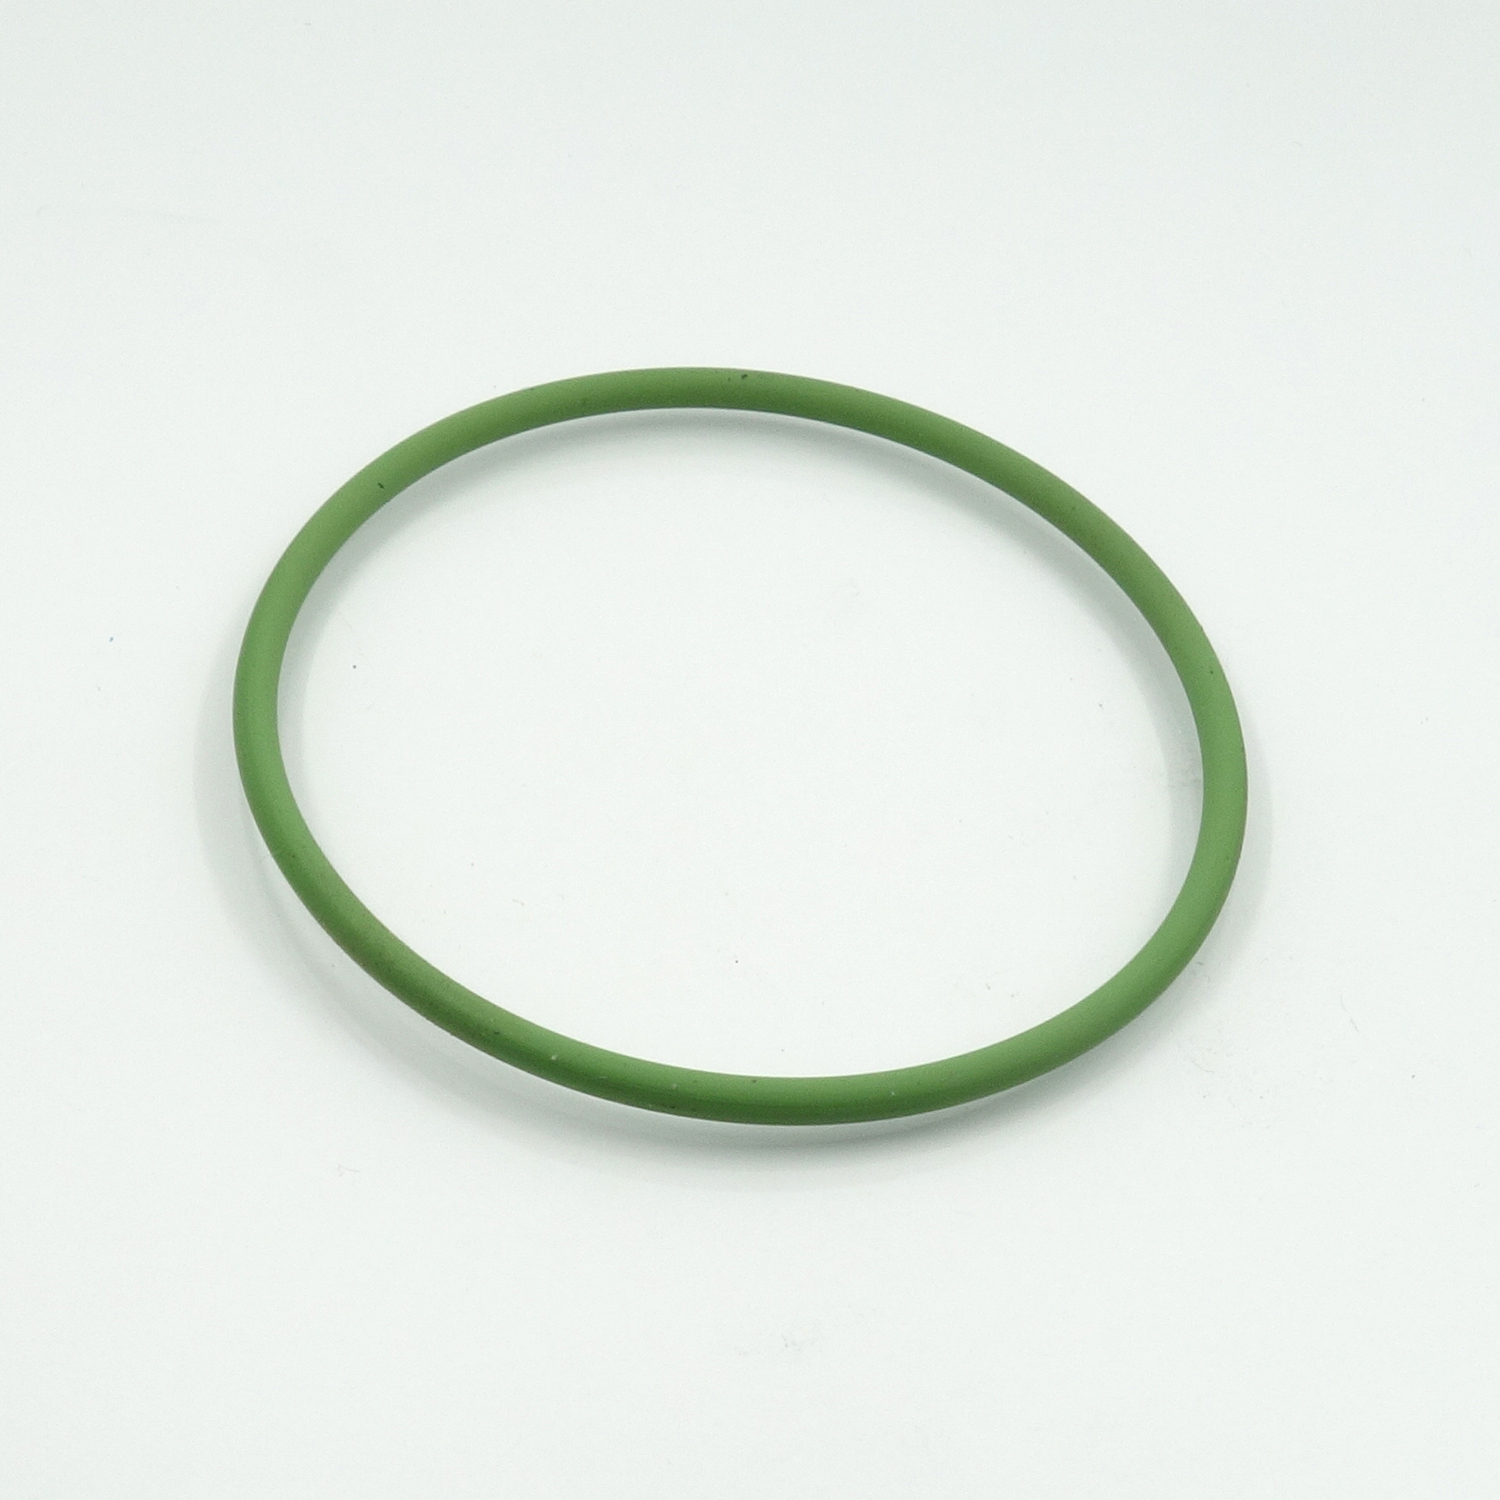 O-RING VITON GREEN